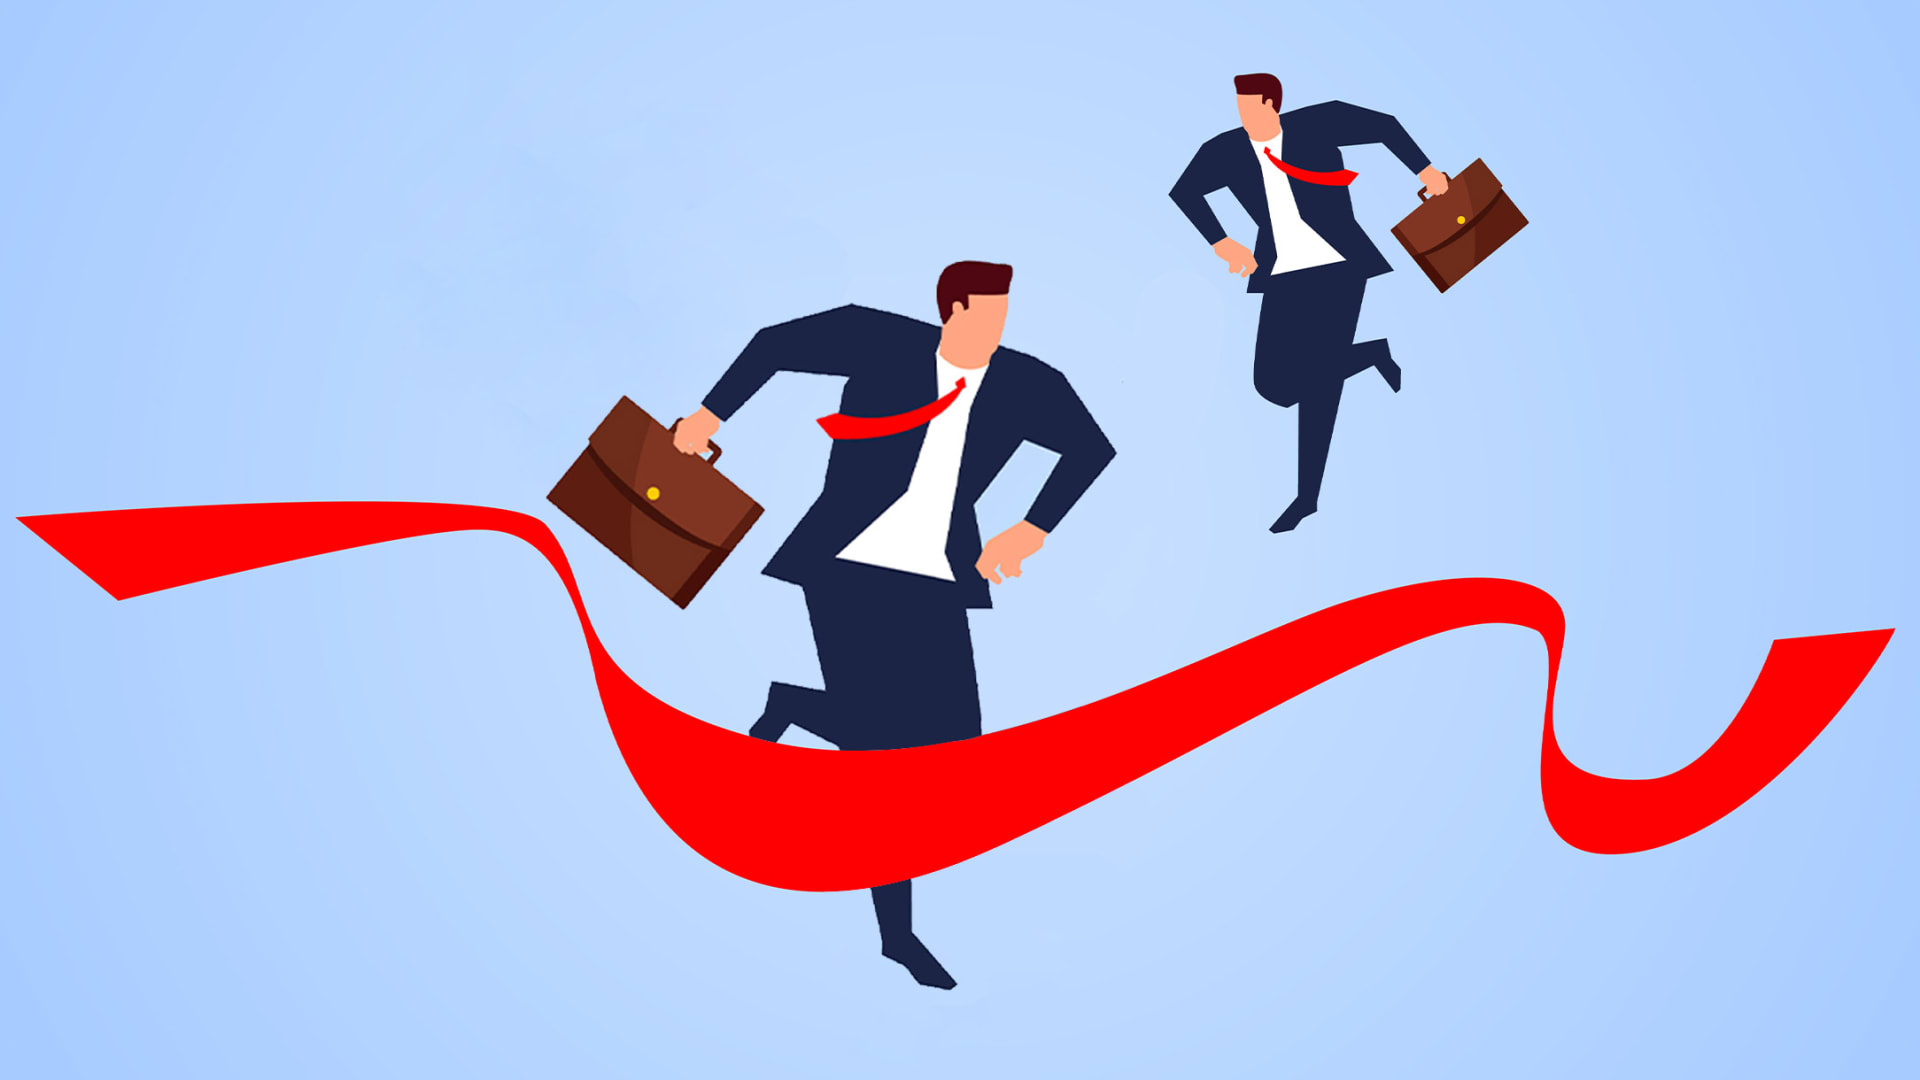 6 Keys to Keeping Your Company in the Lead